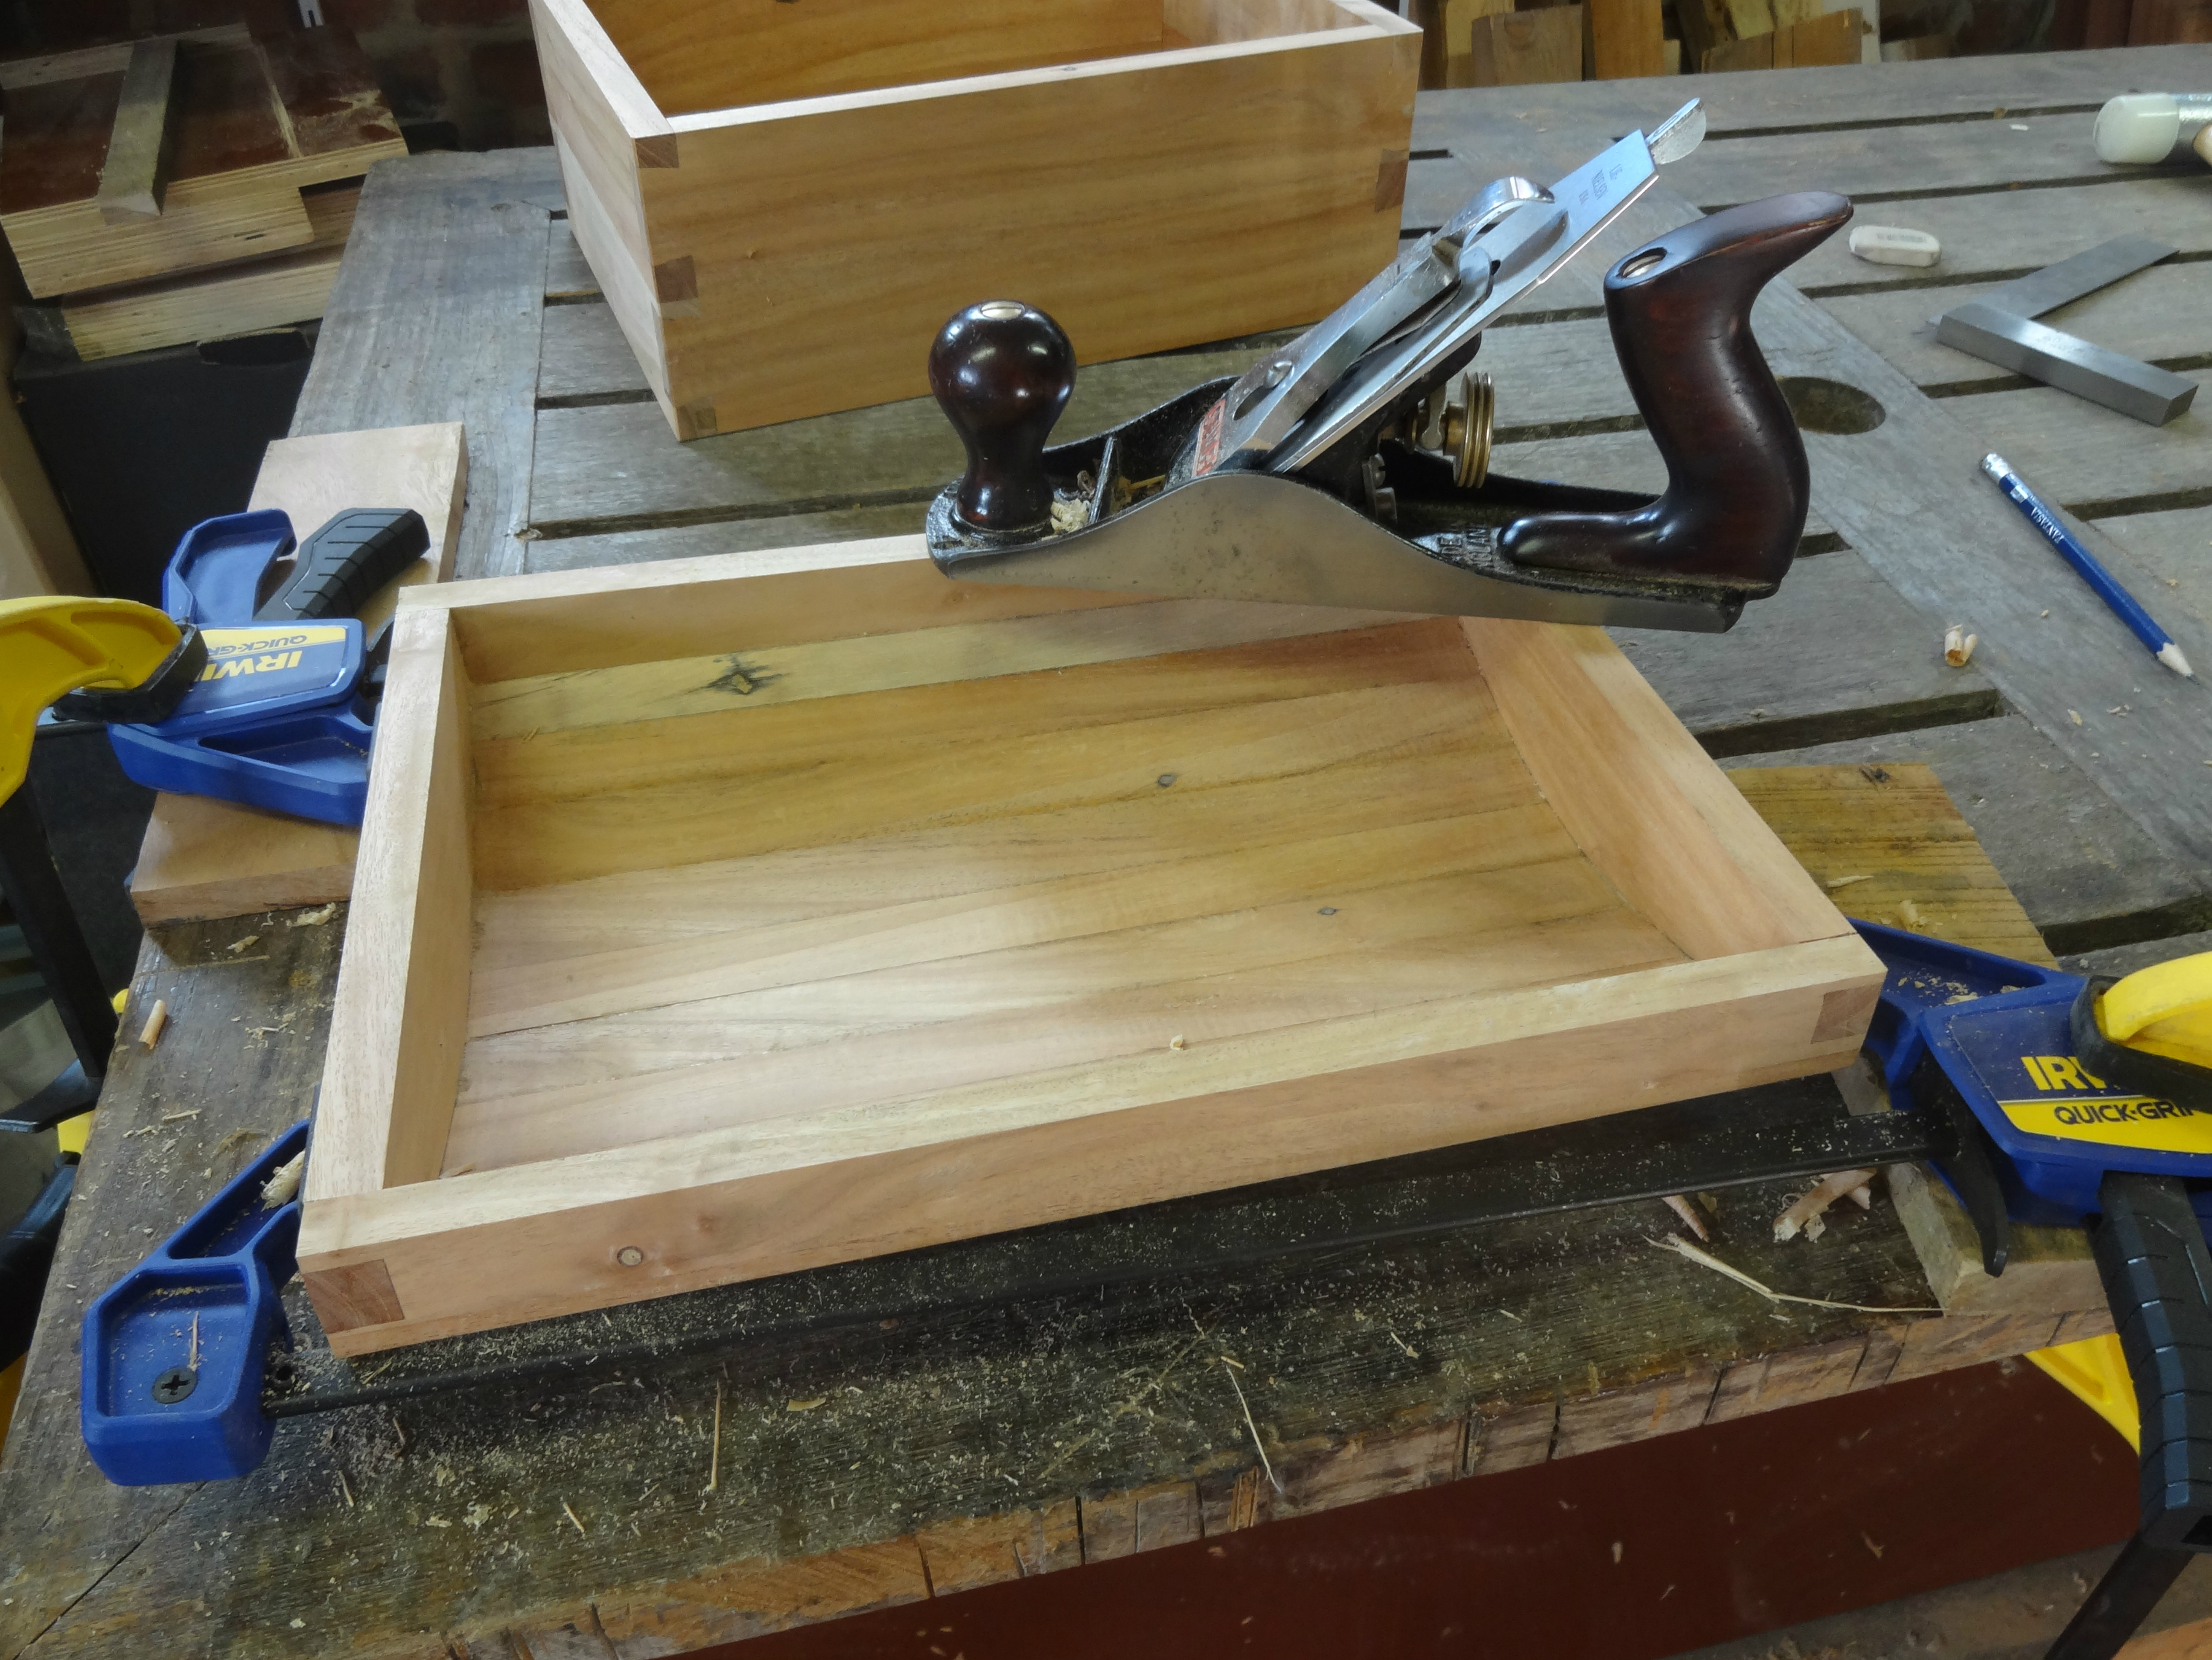 Picture of Planing Rim of Lid Flush, Trimming Dovetail Joints